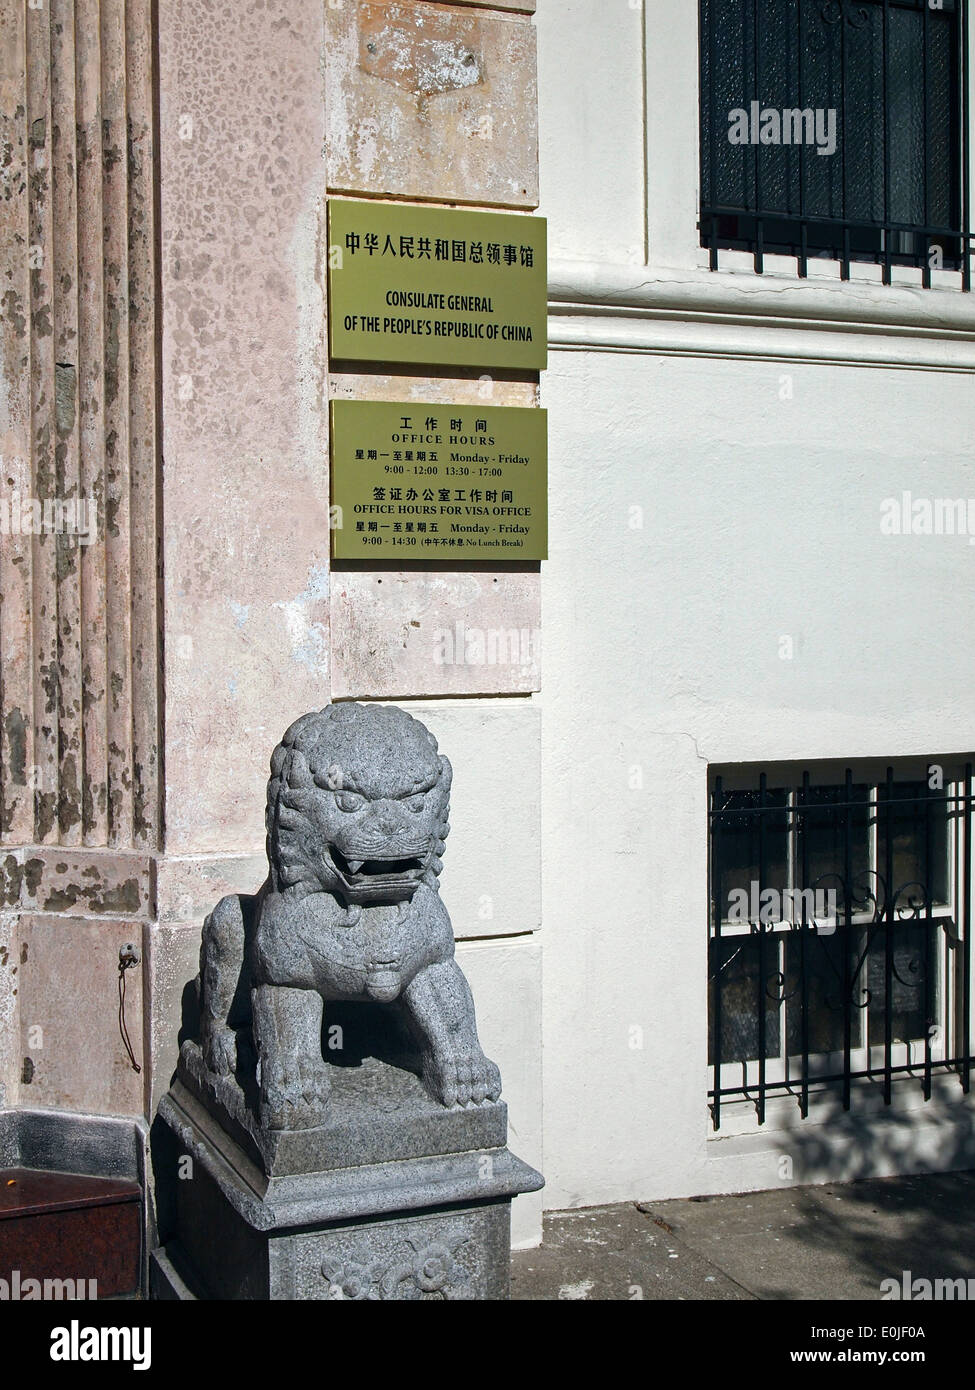 Lion Statue Consulate General of the People's Republic of China entrance in San Francisco - Stock Image